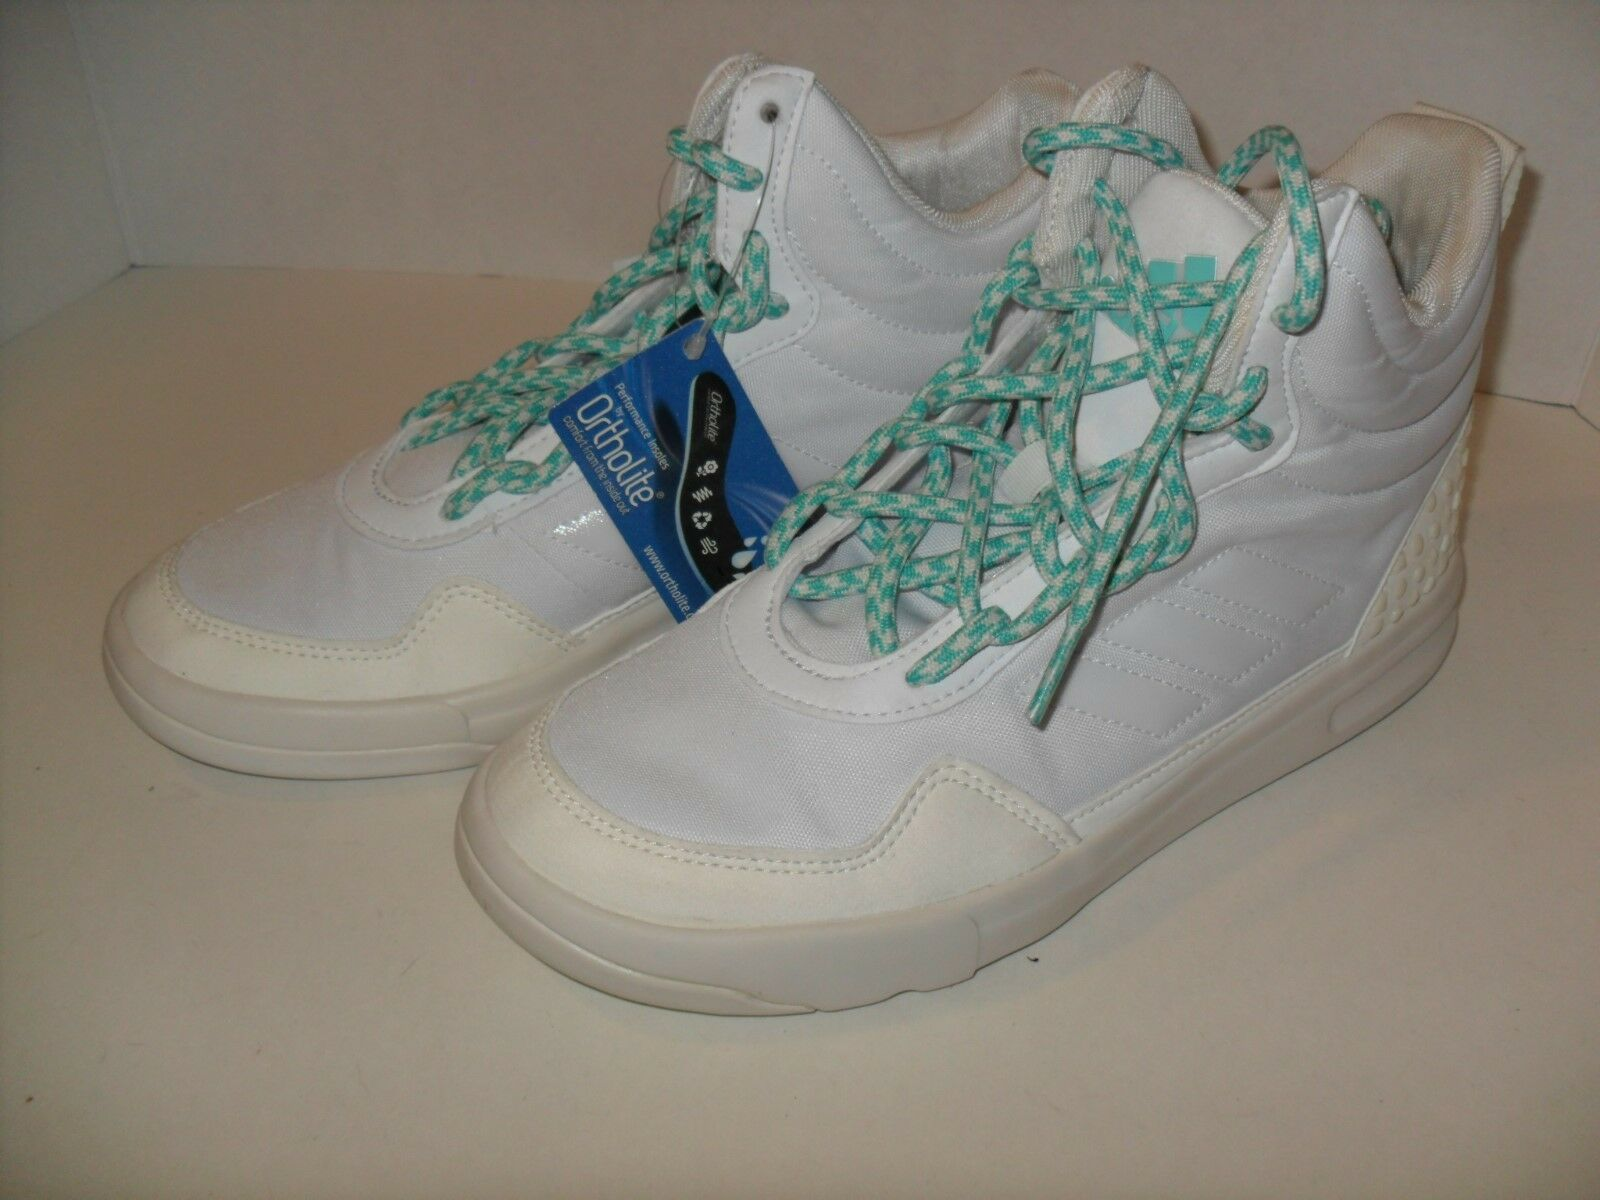 ADIDAS STELLASPORT IRANA Hi-Top SNEAKERS SHOES WHITE   Off-White shoes AQ2654